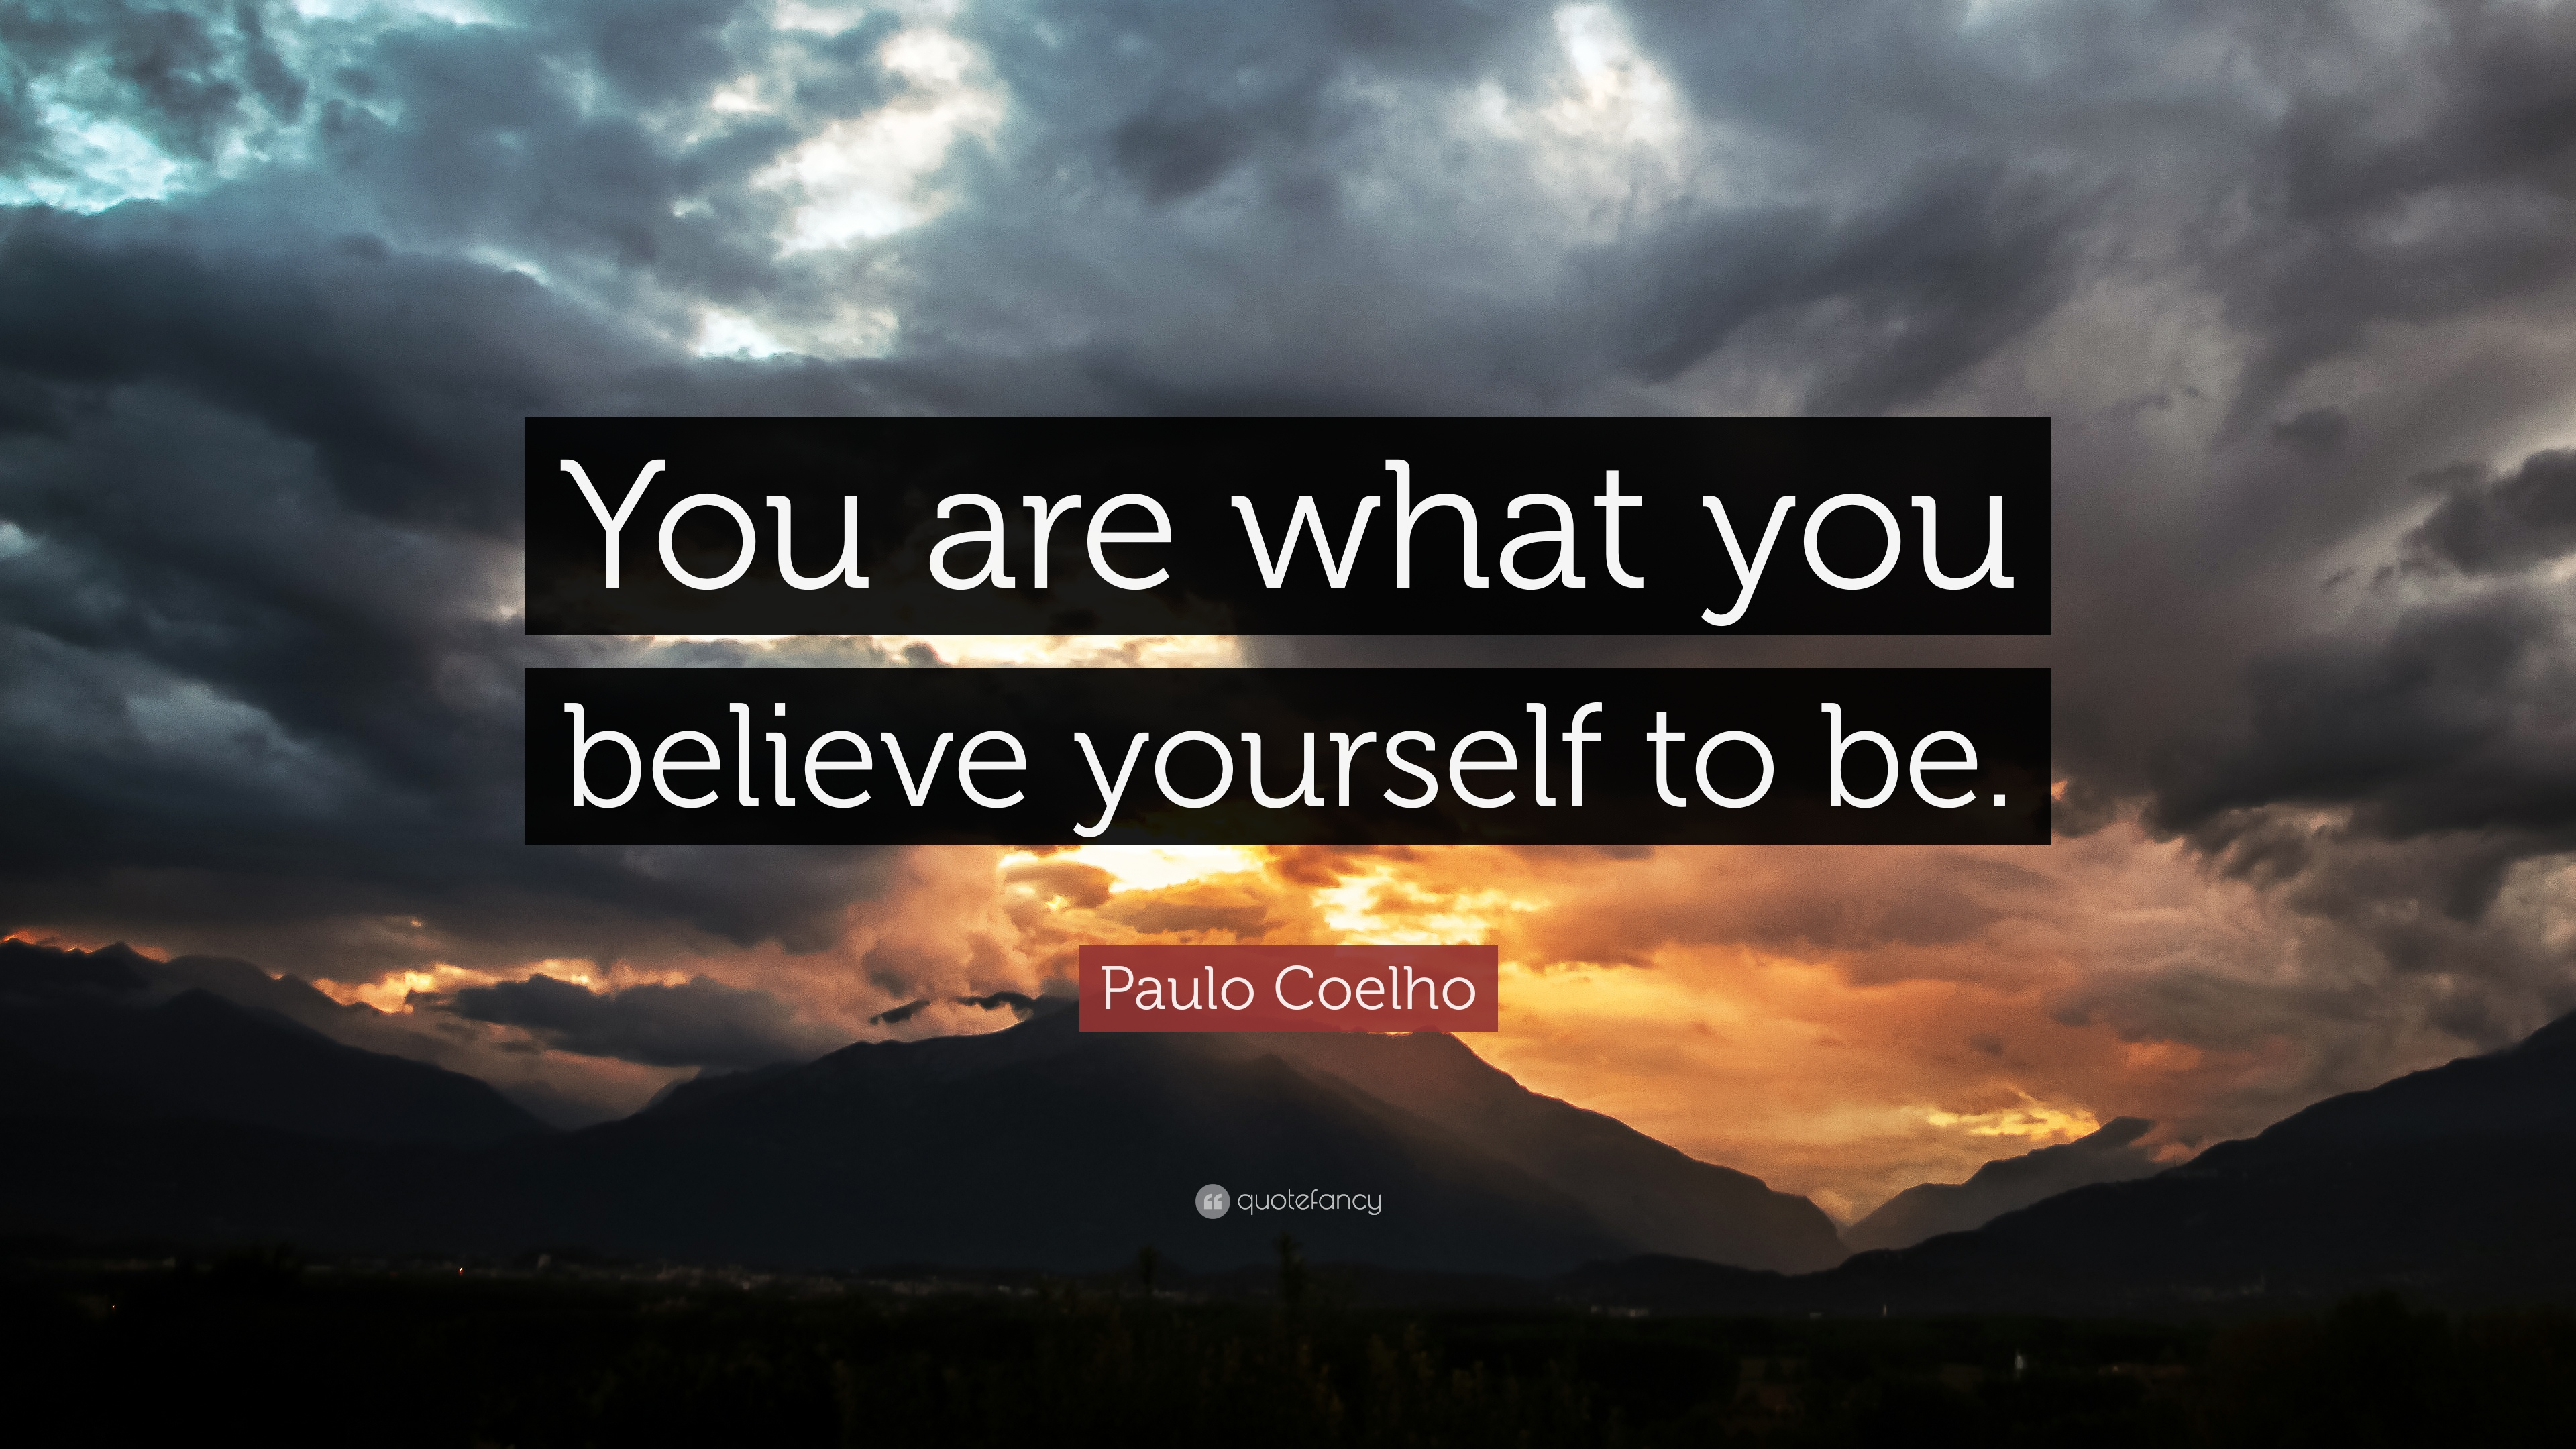 Free Inspirational Quotes Wallpaper Paulo Coelho Quotes Be Yourself Zitate F 252 R Das Leben